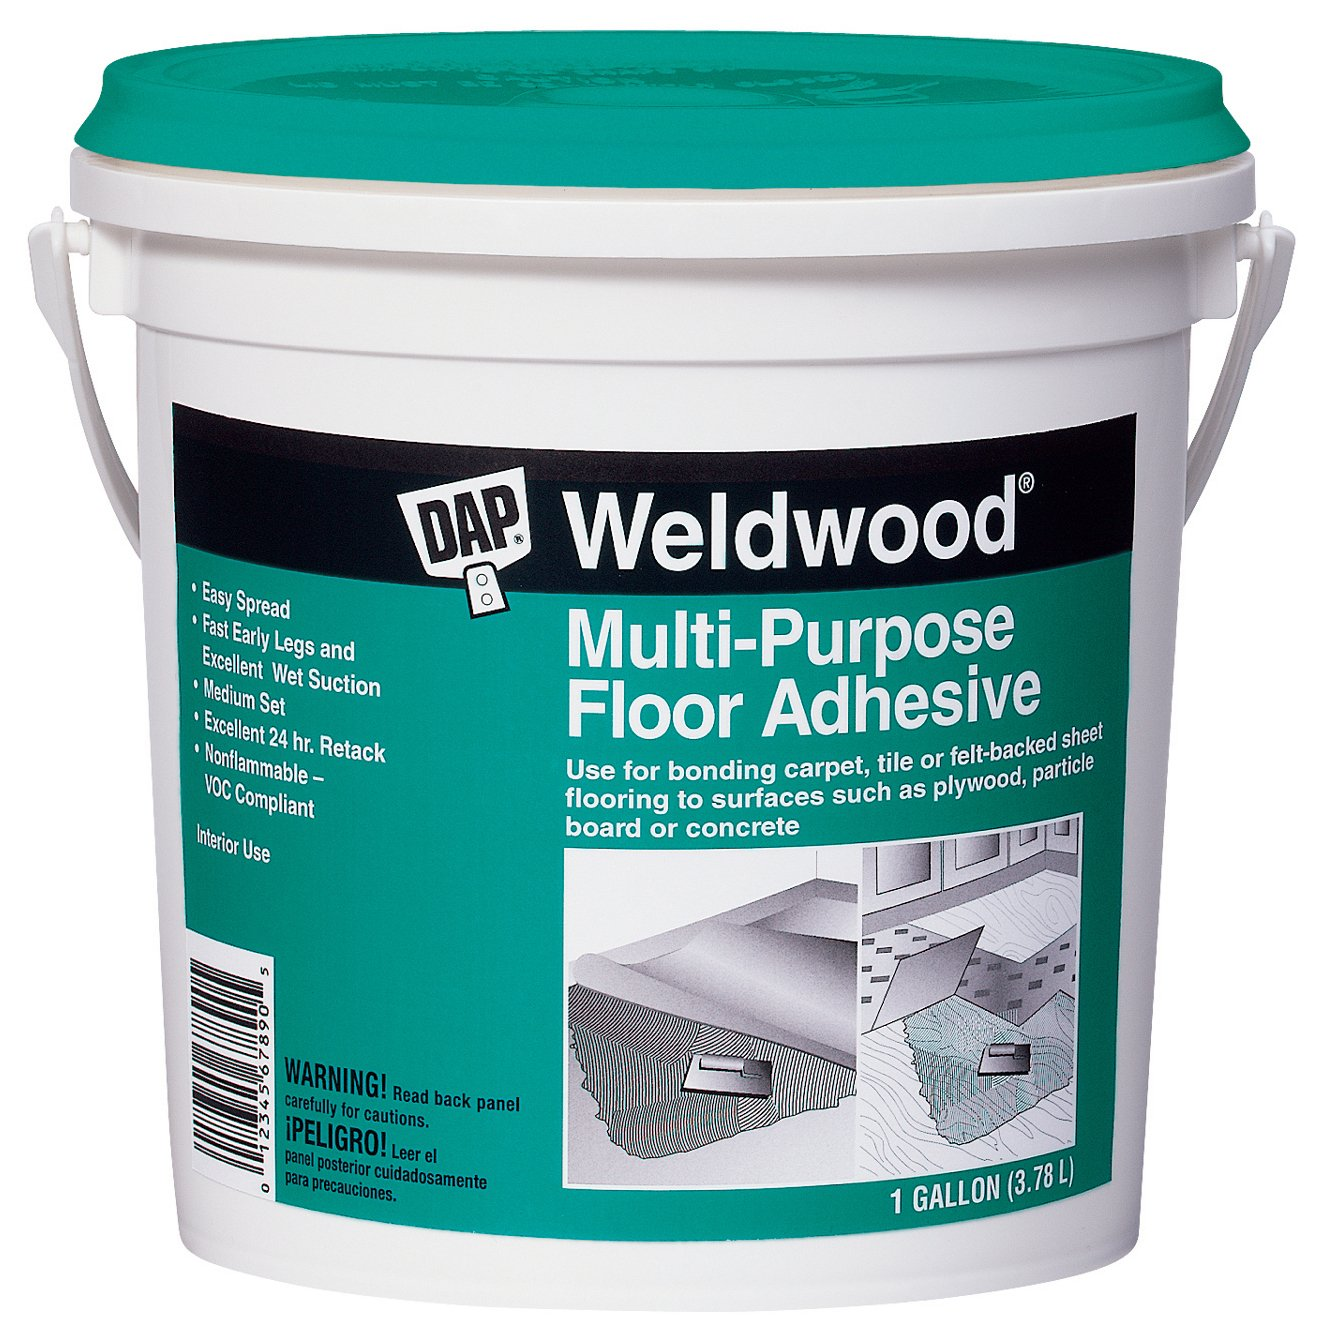 Dap 00142 Weldwood Multi-Purpose Floor Adhesive, Gallon